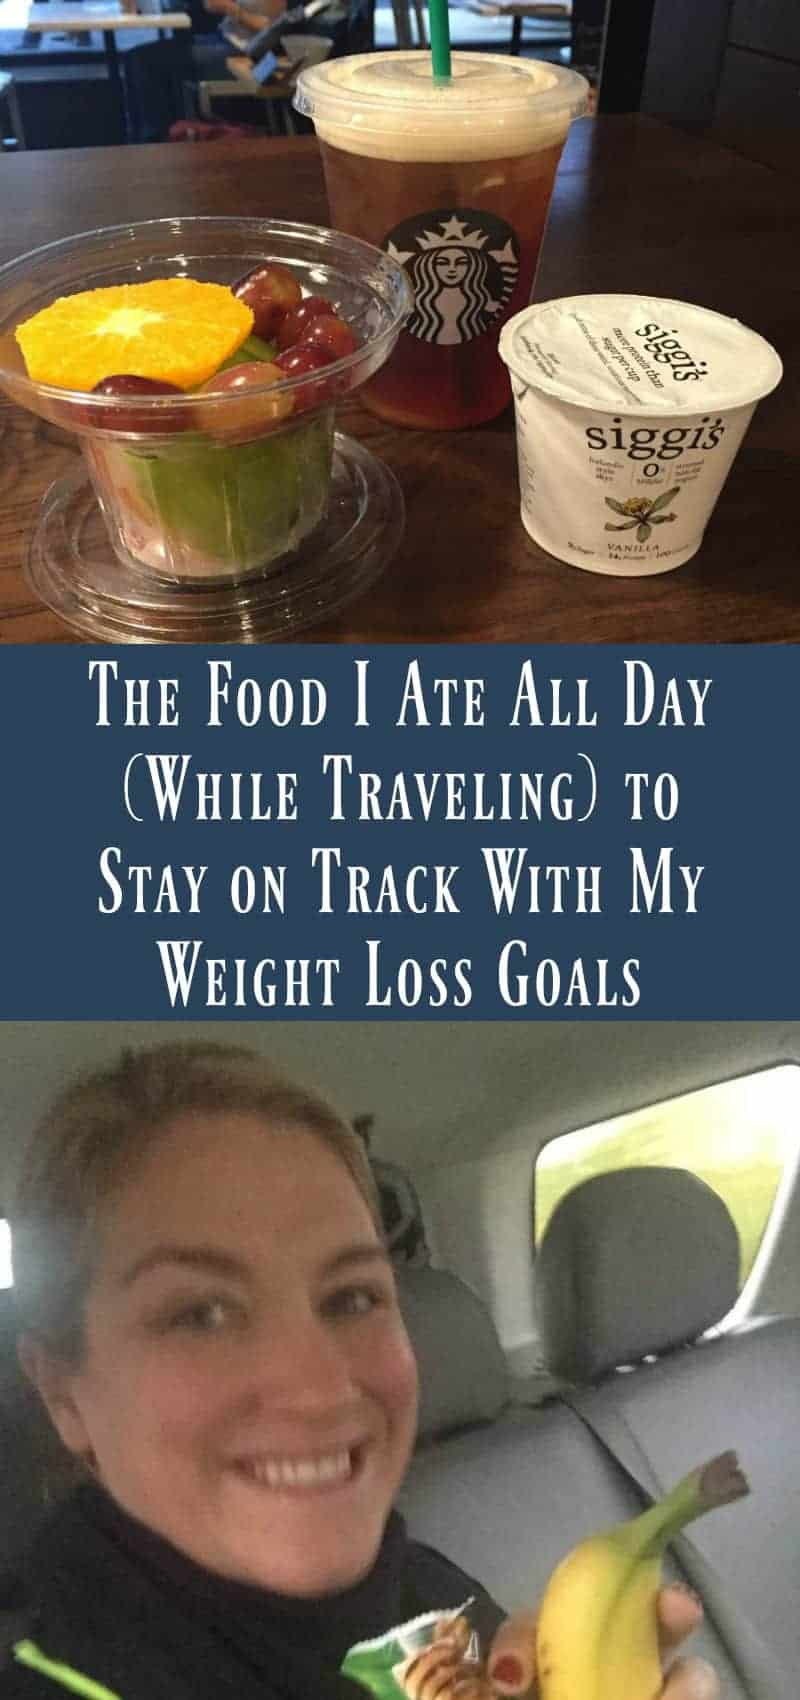 """Healthy Dining Out While Traveling: Yes, Virginia, There Is A Way So I was in Chicago last week and spending a lot (i.e.: all) of my meals out and about and I kept getting asked """"How do you stay on track when you're away?"""" I've already shared my """"5 Tips for Stayig Healthy While Traveling"""" with you (https://www.organizeyourselfskinny.com/2016/05/12/5-simple-tips-to-stay-healthy-while-traveling/) but I thought it be helpful to see a photo journals of a healthy day when every single thing you consume came from a restaurant. Here we go: I started the day with 24oz of water. Early AM Uber ride from my hotel to SoulCycle Loop. I was concerned I'd only want to eat a little bit that I needed some carb fuel to make it through a 60-minute spin class, so I went with some Nature Valley crunchy granola bars, a banana and an iced coffee: I arrived at SoulCycle an hour and a half early (I'm blaming the time change) so I stopped for an espresso and some more fruit: SoulCyle was a crazy good workout, and I had another 24oz of water during and after. Then I decided on another snack after. This time I had some protein in A Siggi's yogurt and more fruit, with an iced black tea: About an hour after the snack, I realized I was going to be in trouble. I have been working so hard at increasing my rate of metabolism, and apparently today it kicked back into high gear. On these days, I know I need to add volume with fresh fruits and veggies but also add healthy oils and protein to feed the beast (my metabolism). I had another 24oz of water in hopes I could trick my body into thinking it was full. Fail. LOL I stopped off for 32oz of club soda, and salad with shrimp, a hardboiled egg AND avocado. I used 2tsp of olive oil on my salad, as well: I could feel my legs getting tight as the afternoon progressed, so I stretched again, and had another 24 ounces of water and another banana. I had a business dinner and went with more club soda, a tricolore salad and some grilled veggies with a polenta pa"""